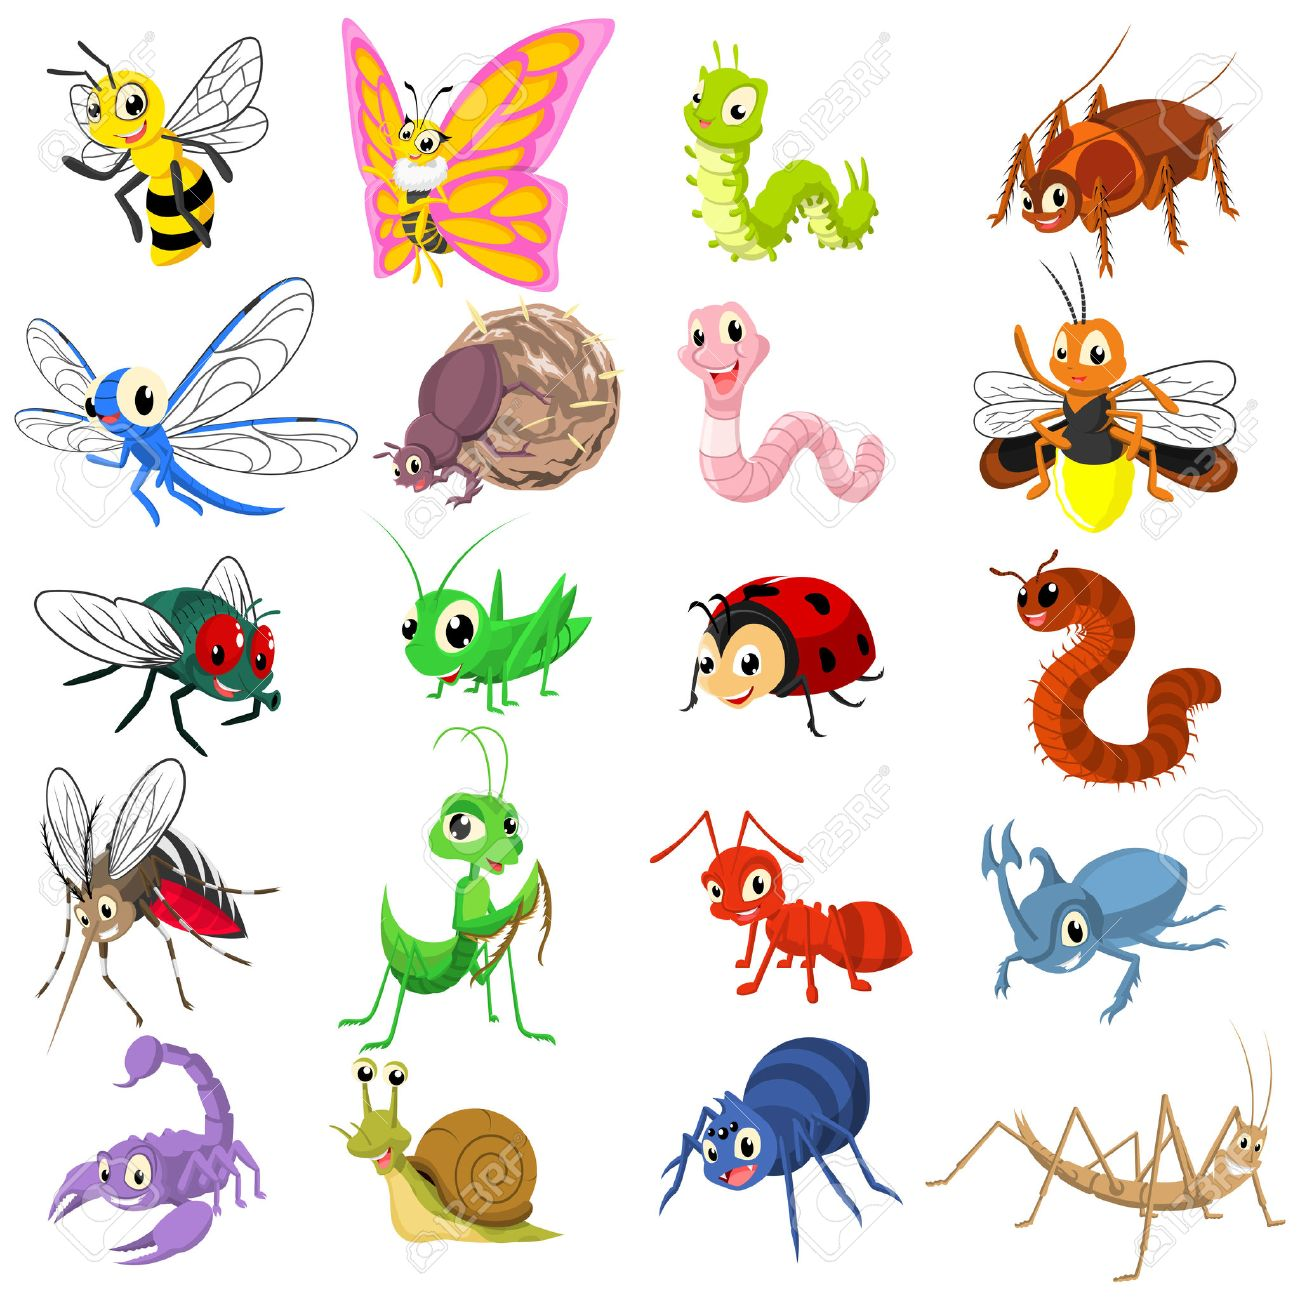 Firefly insect cartoon